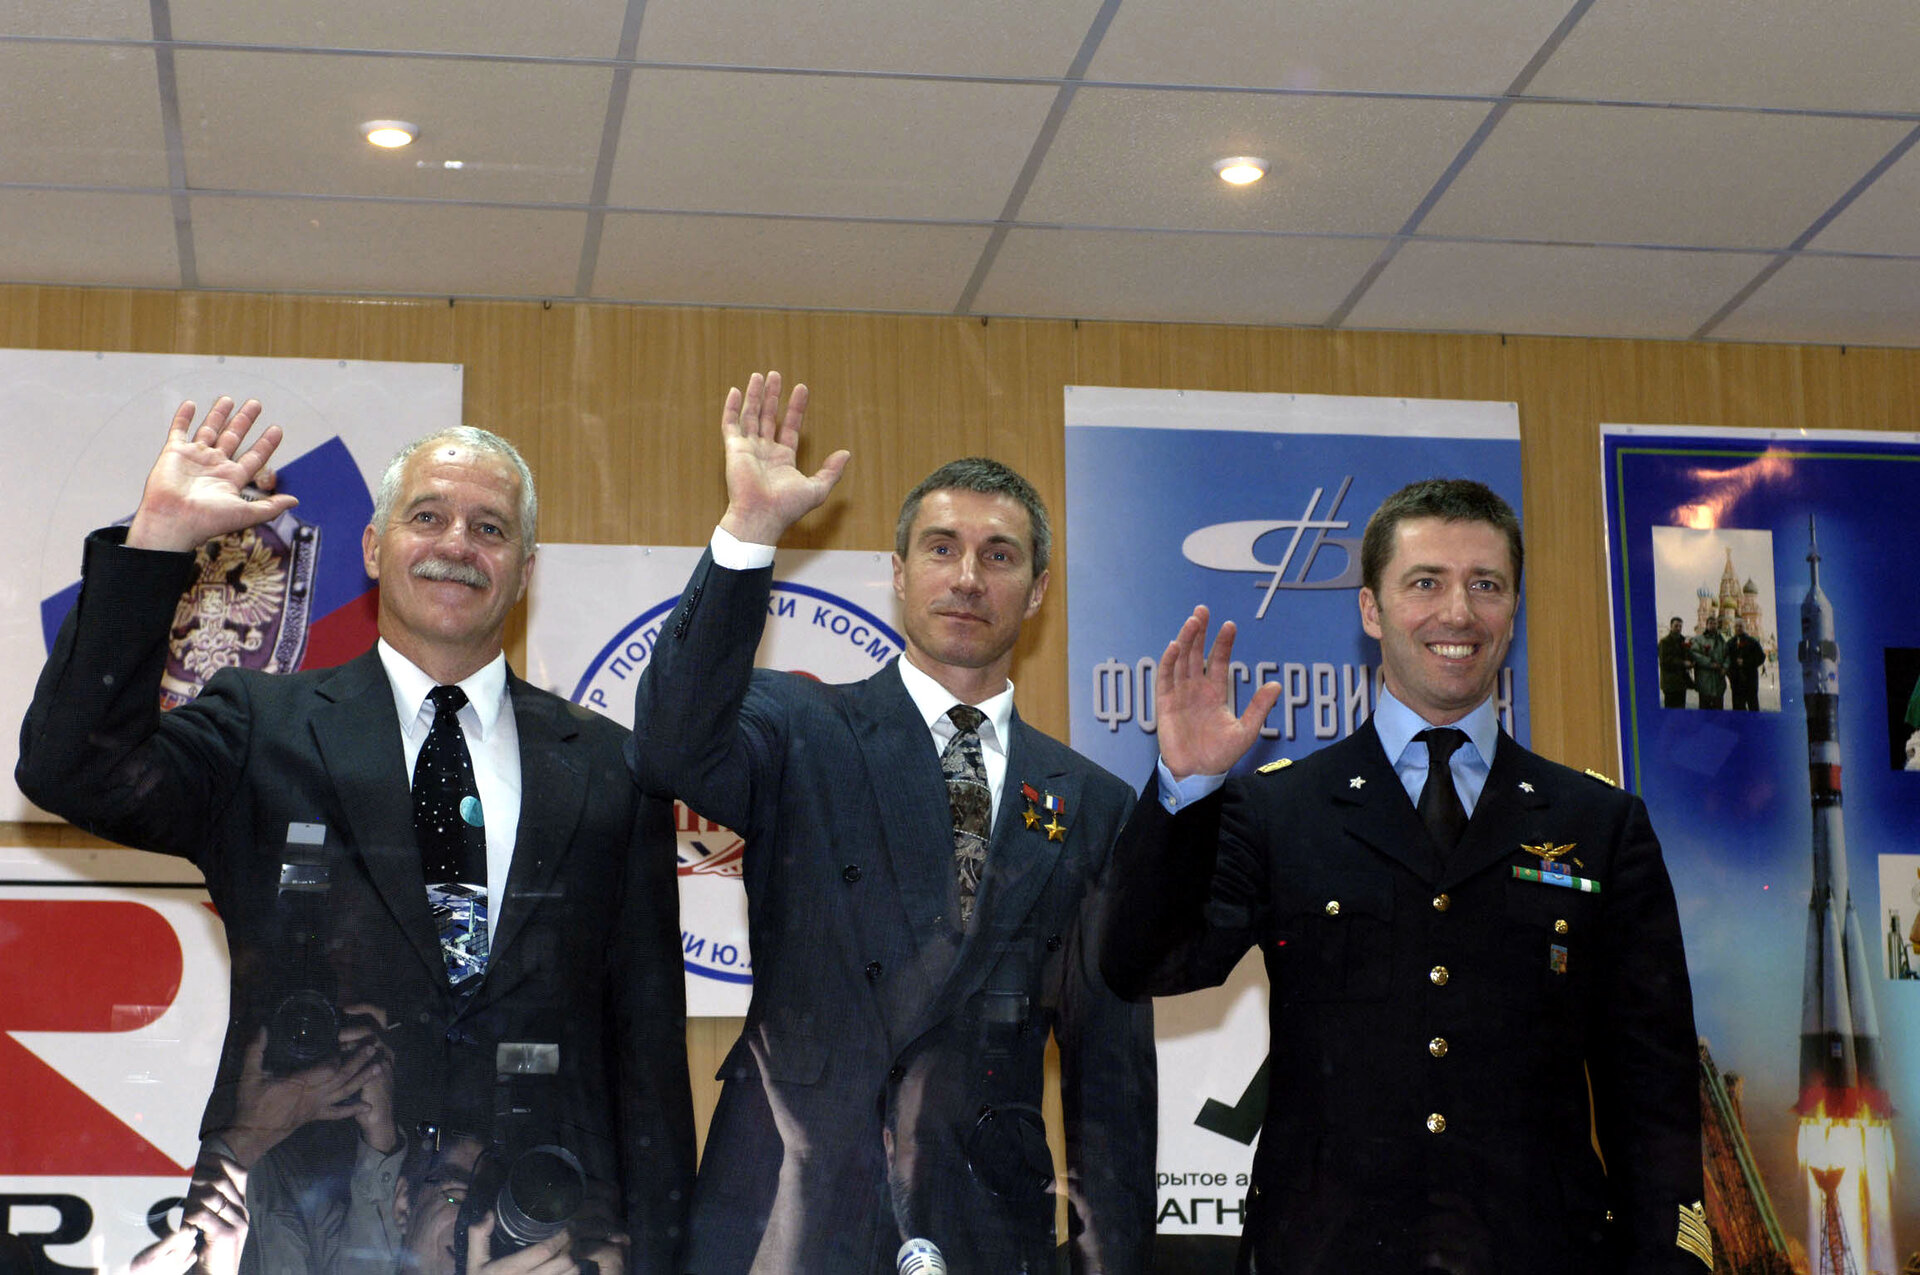 Primary crew of Soyuz TMA-6 during pre-launch press conference